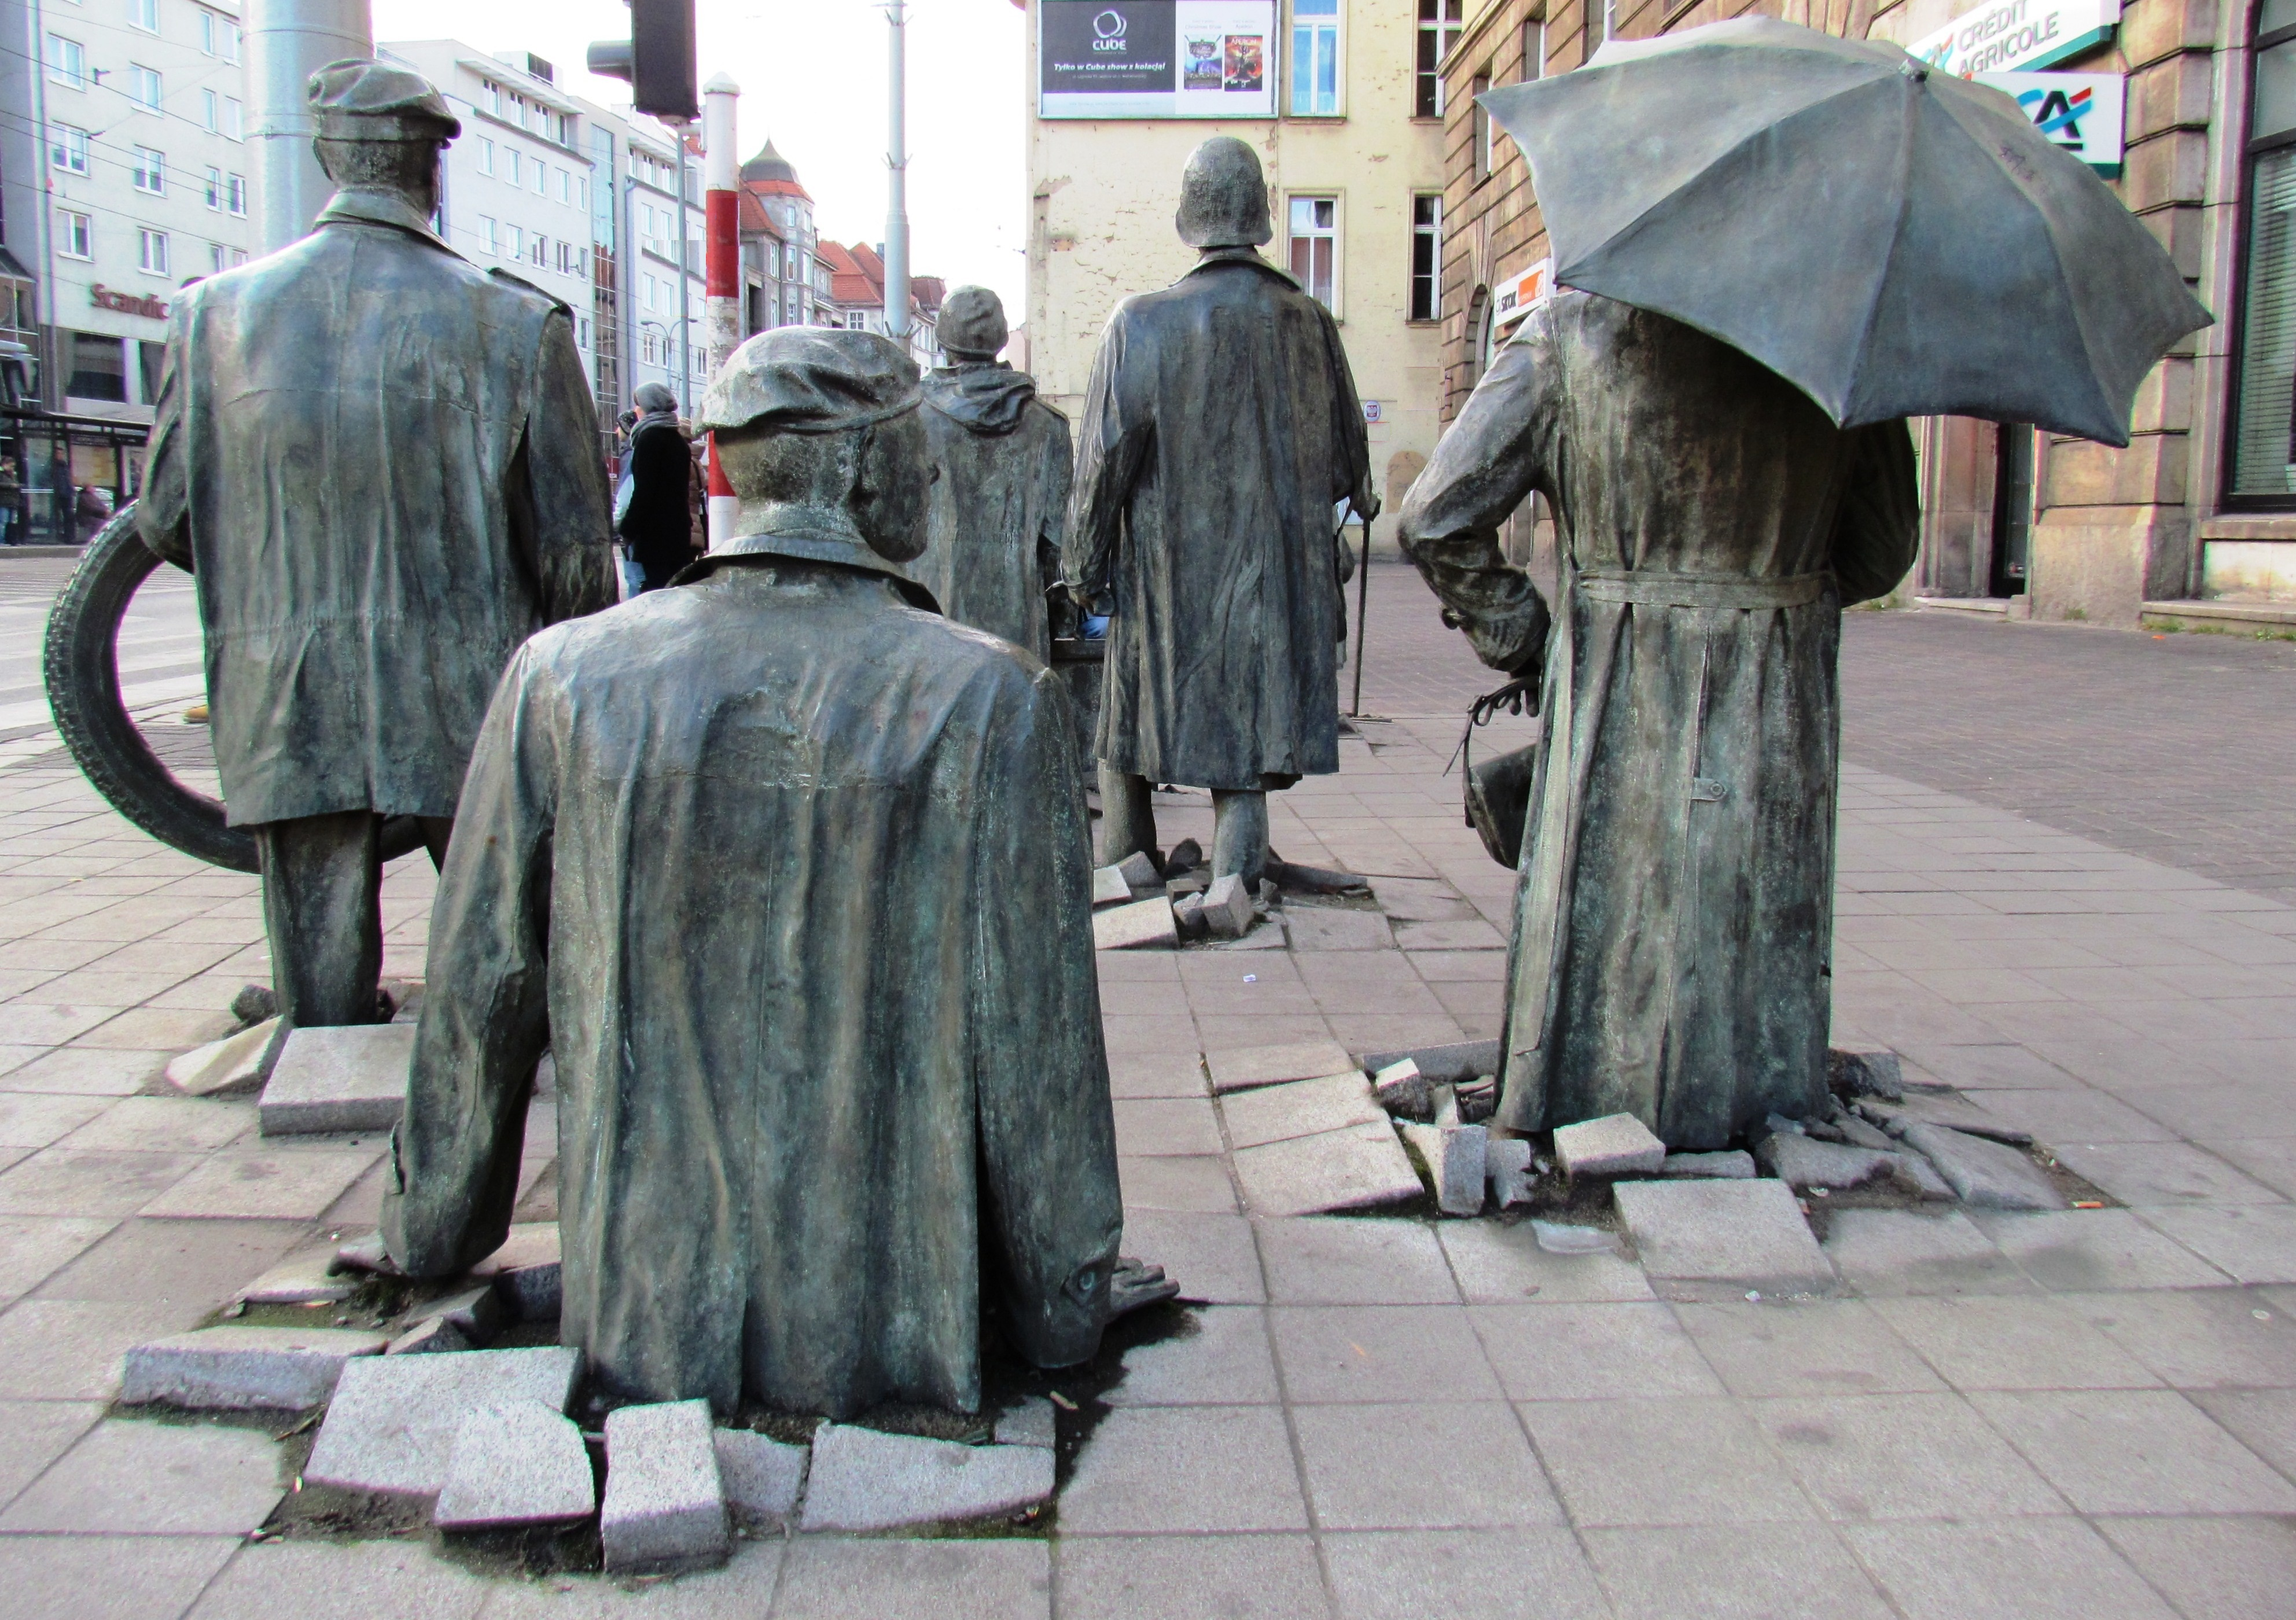 Poland (Wroclaw), The Anonymous Pedestrians | Have Bag, Will Travel